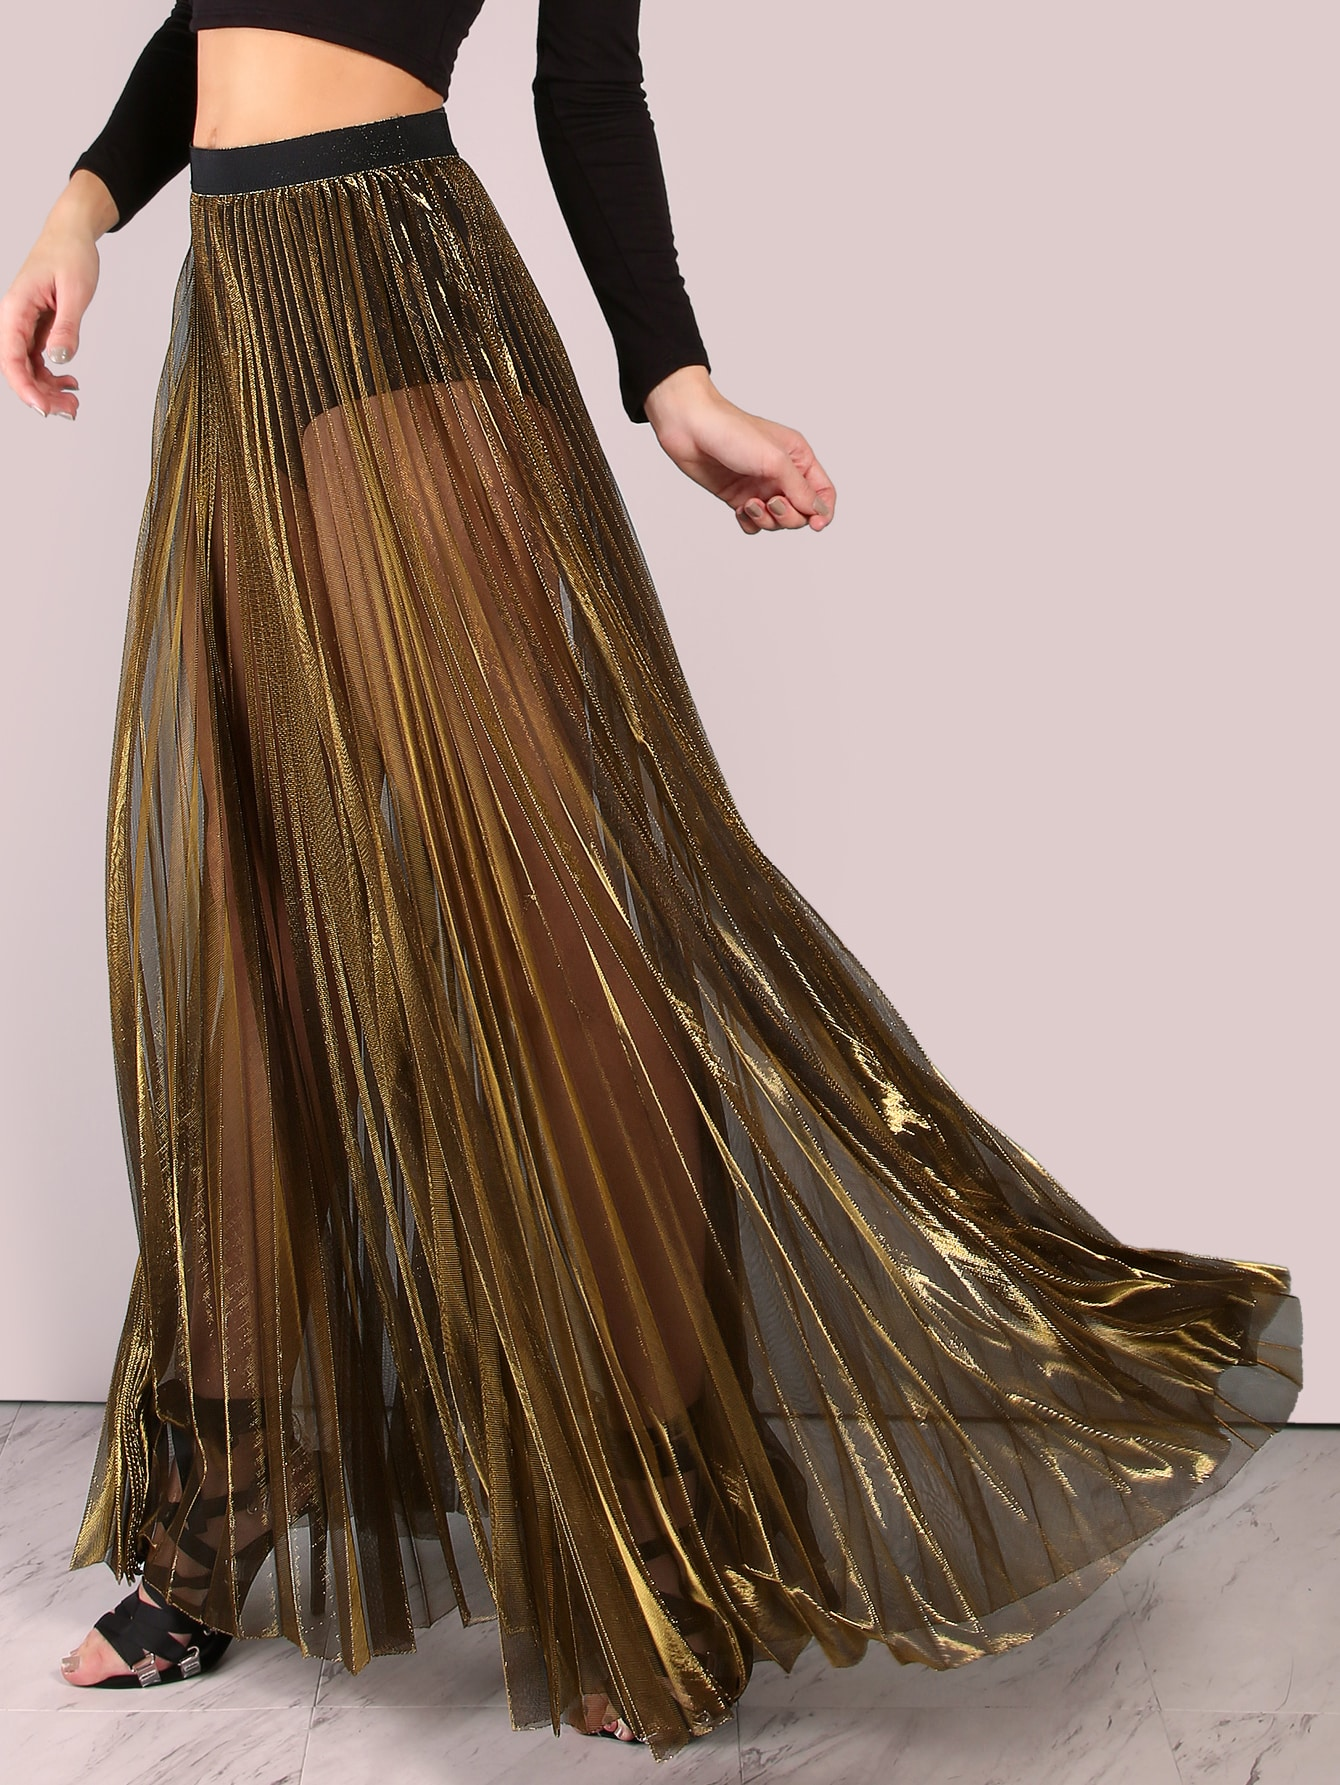 Sheer Metallic Pleated Maxi Skirt GOLD -SheIn(Sheinside)